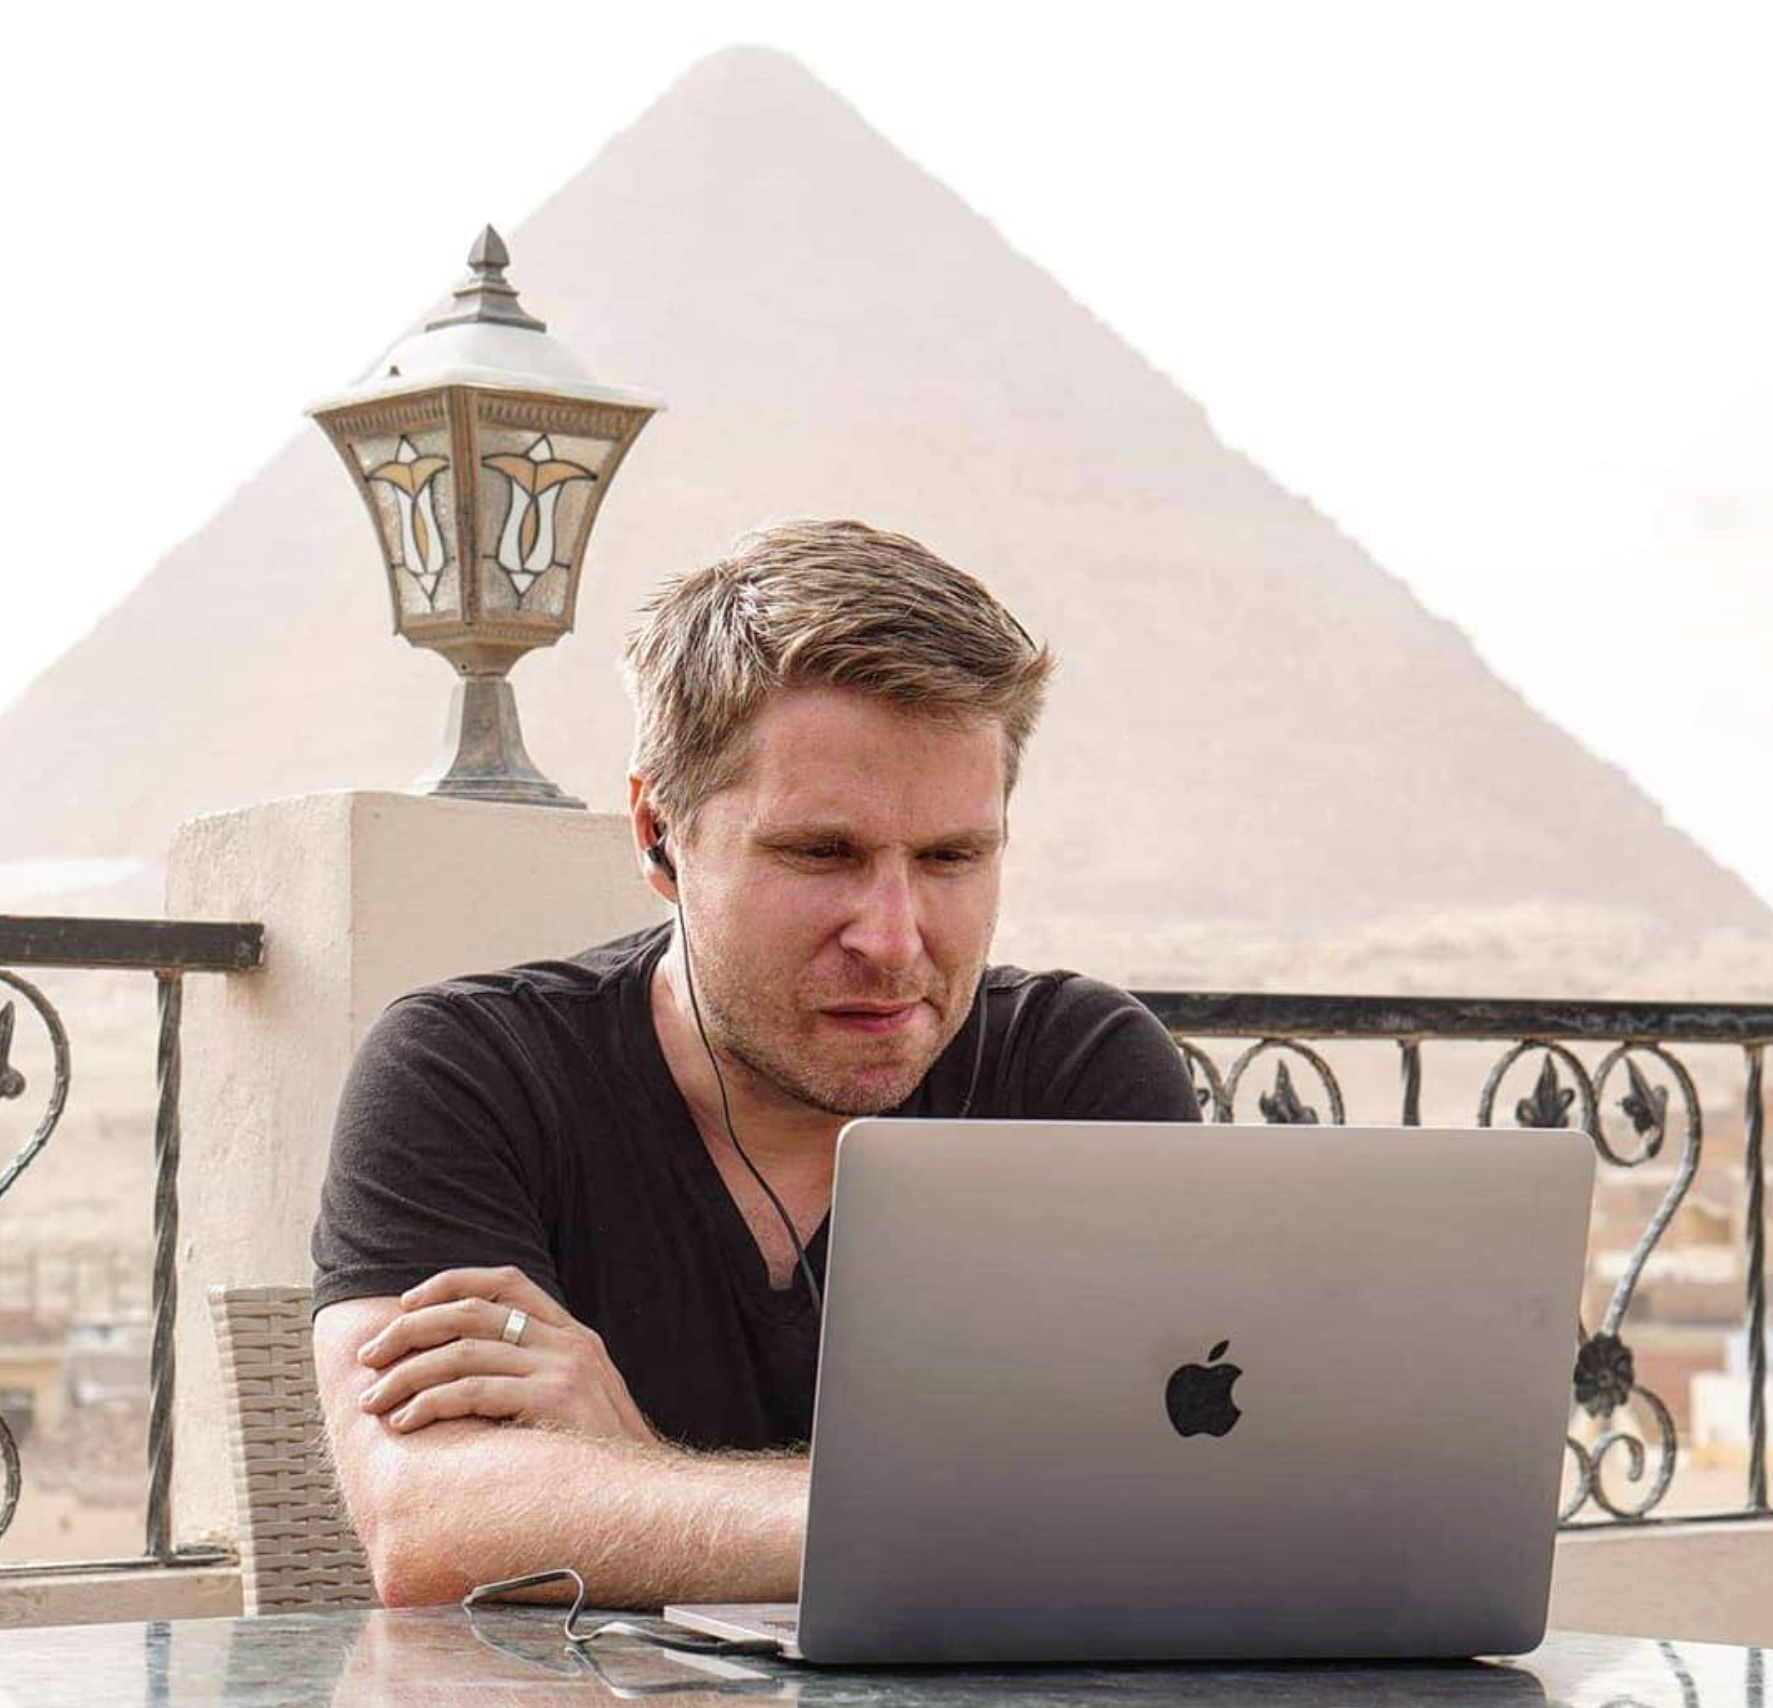 Here's Liam hard at his remote work in Egypt, with the Giza Pyramid as his backdrop. Photo courtesy Liam Martin. Listen to his remote work tips on ep144 of the TalentGrow Show podcast with Halelly Azulay.